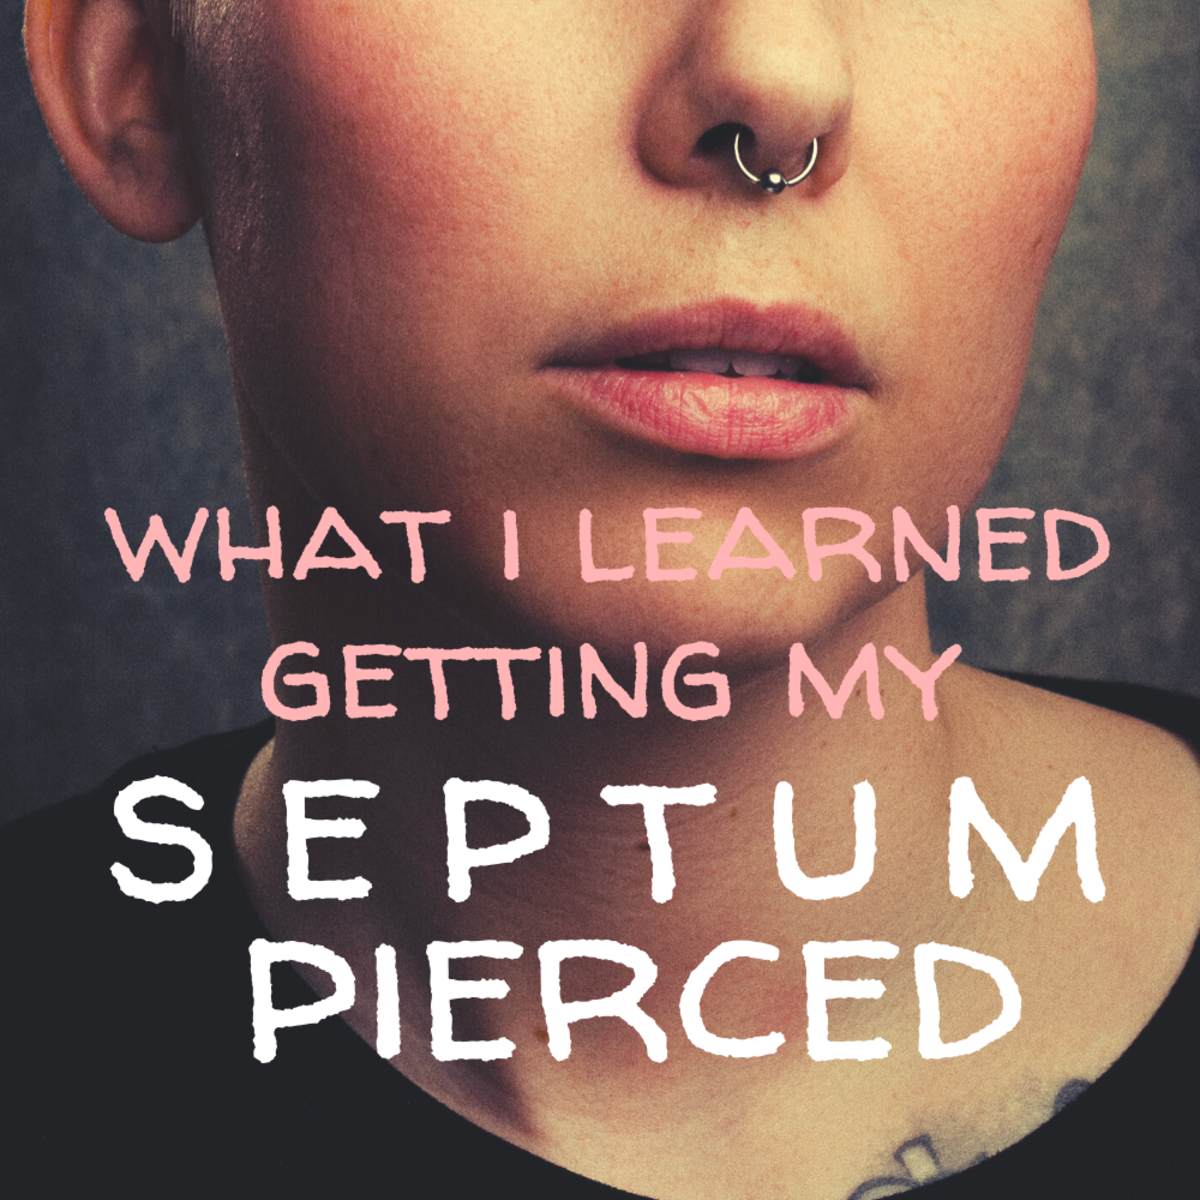 Everything you want to know about getting your septum pierced: heal times, pain, and more.